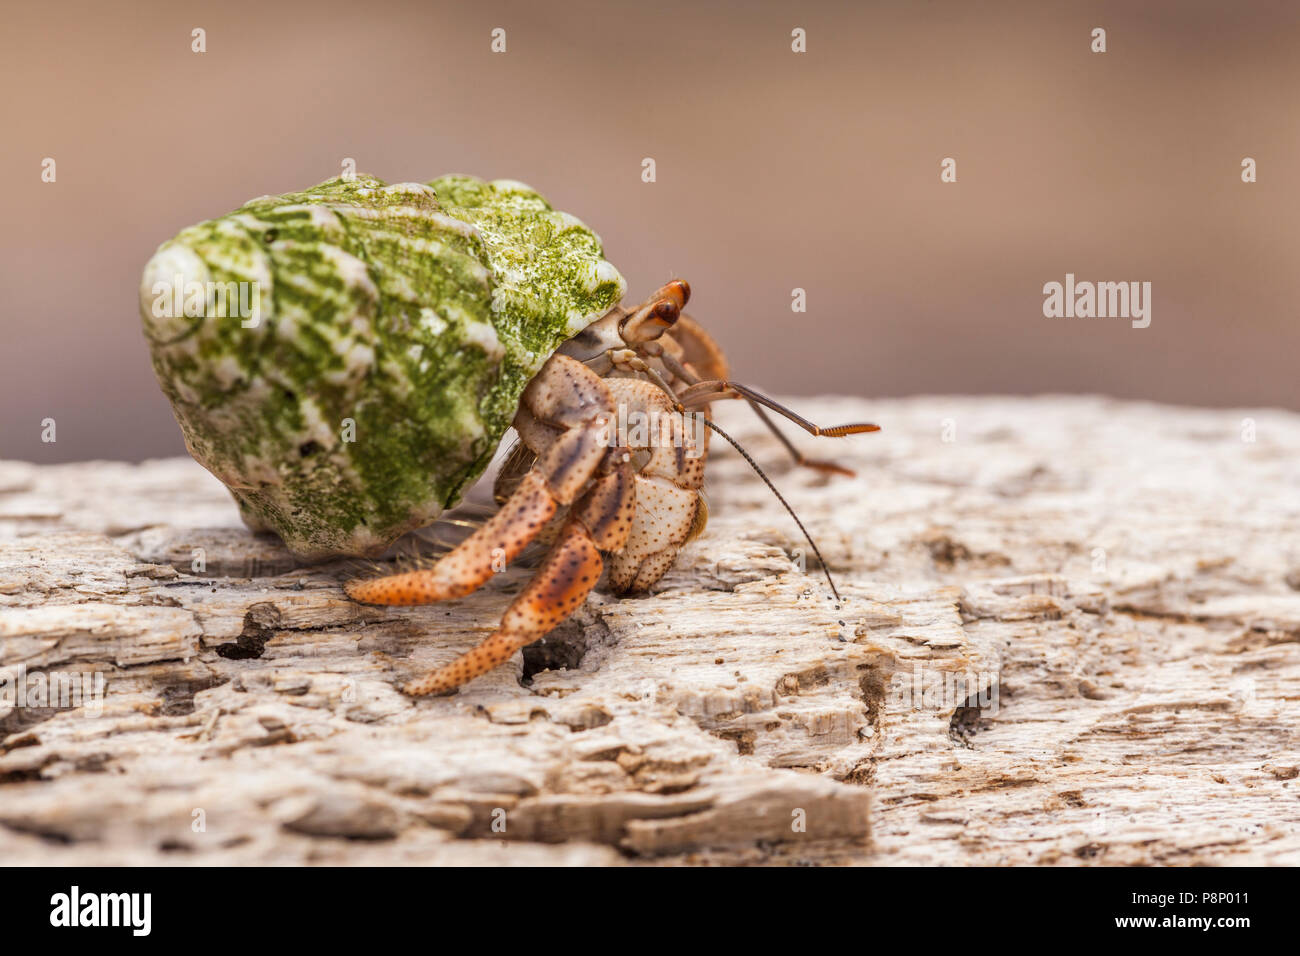 Caribbean Hermit Crab (Coenobita clypeatus) walking on dead tree on beach - Stock Image